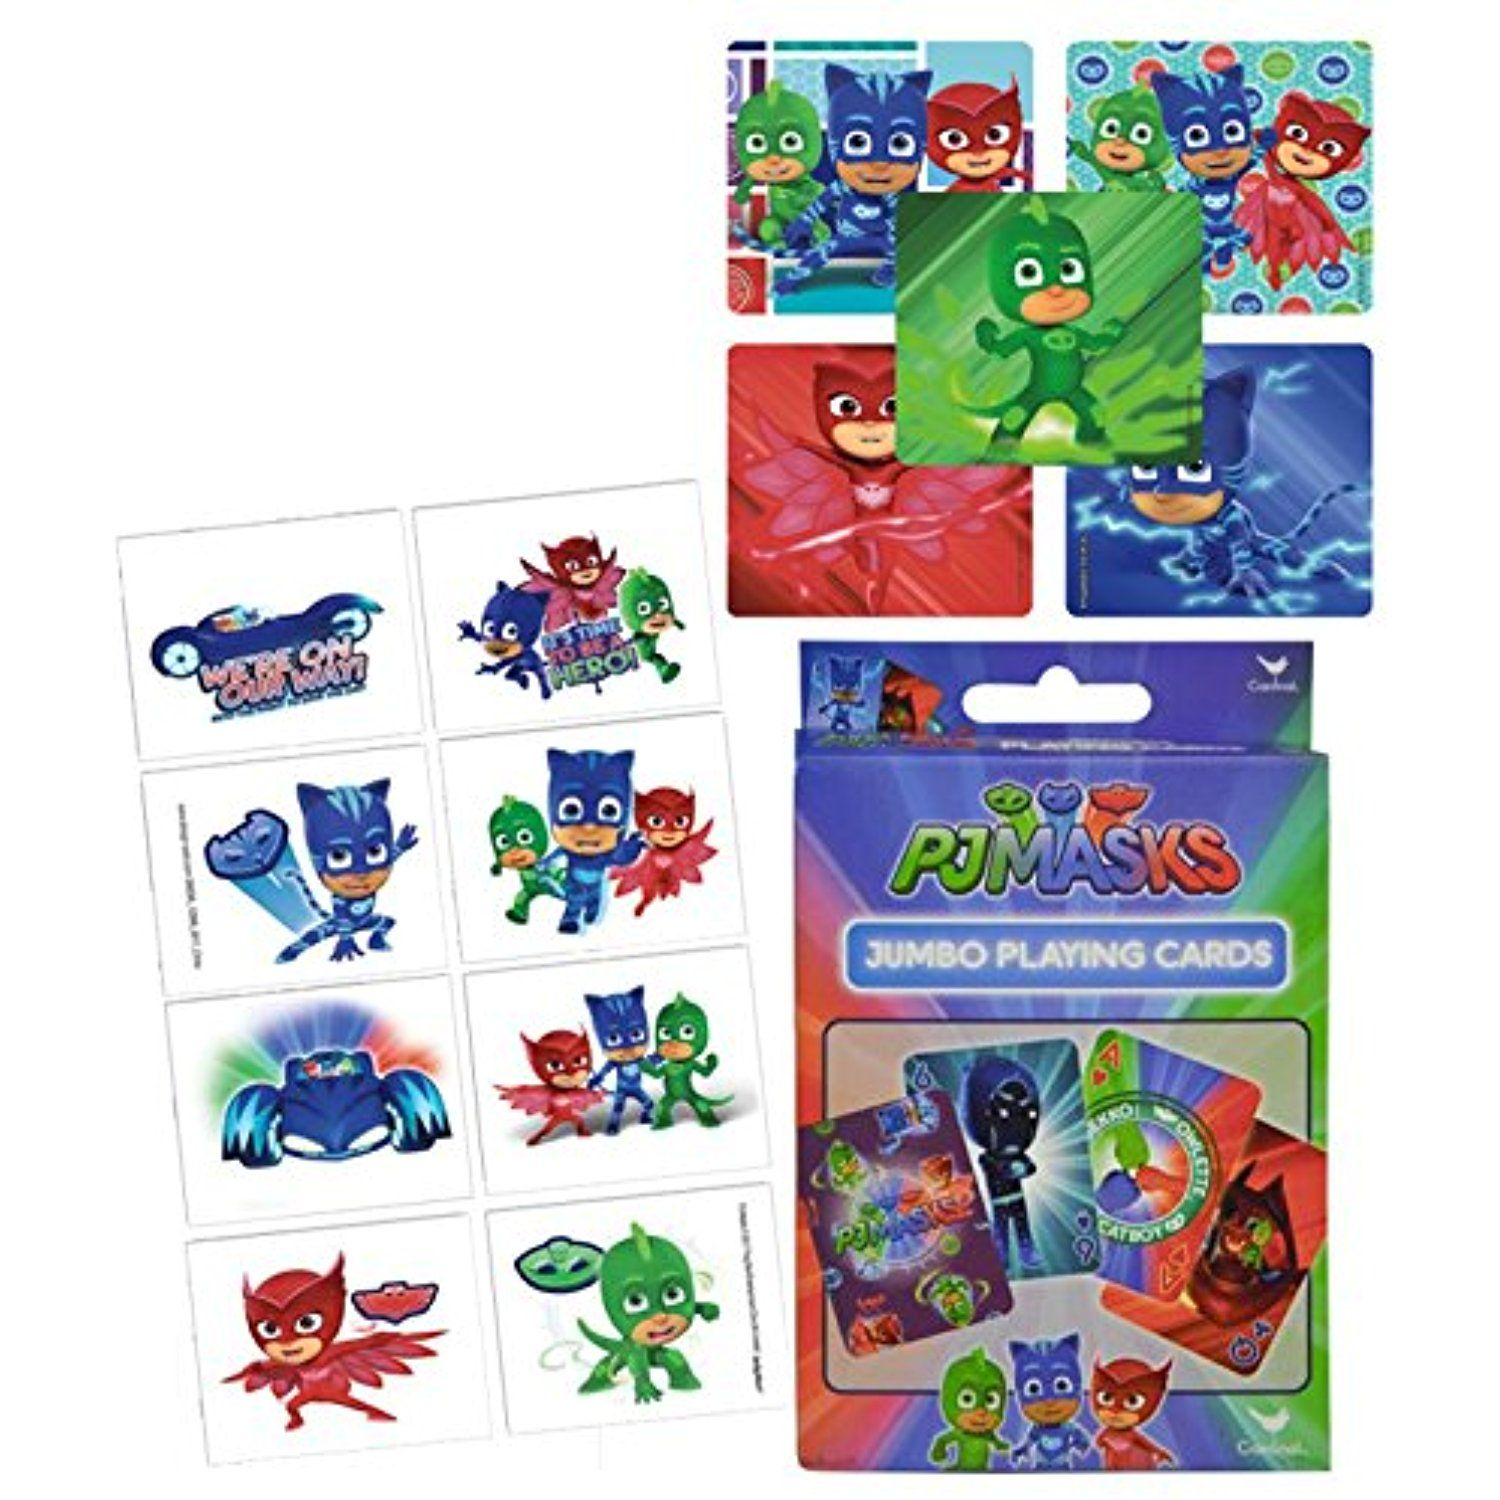 Pj masks stickers temporary tattoos partysupplies with